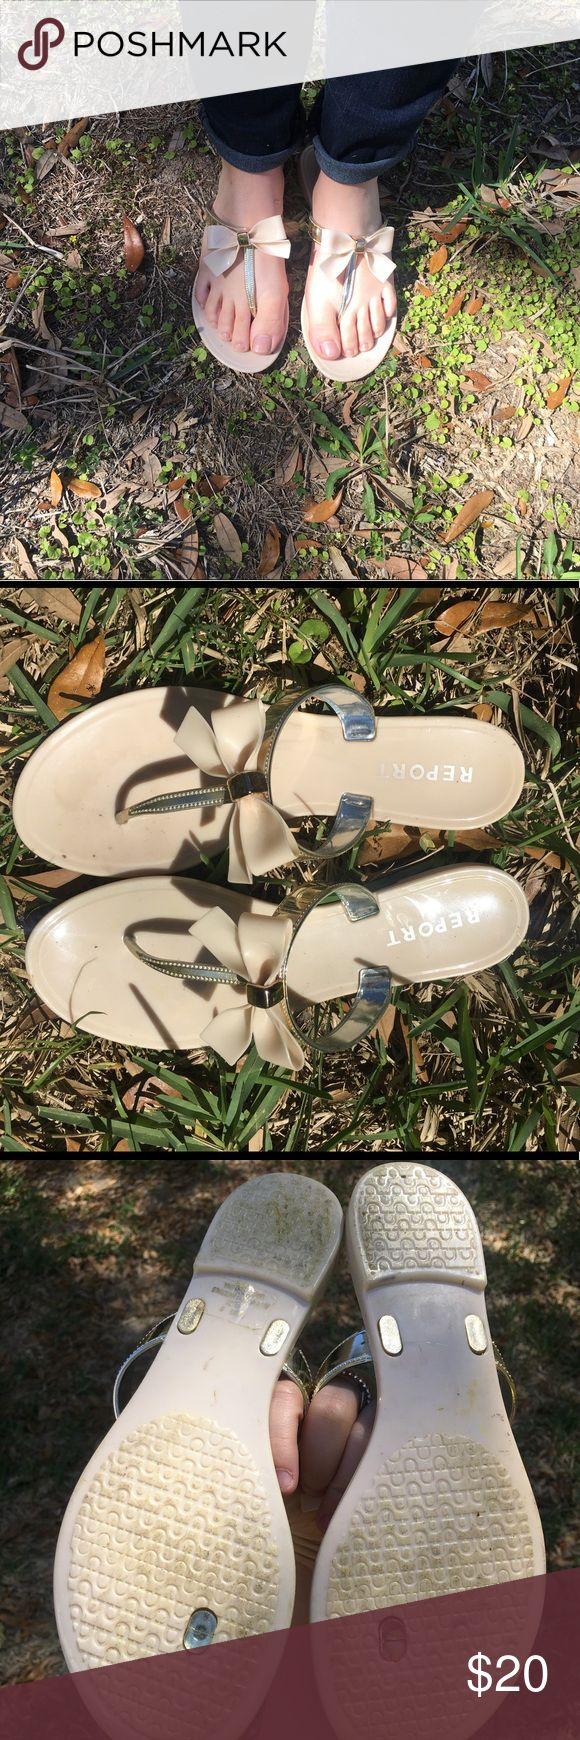 Report Blush Bow Flip Flop Sandals These are super cute and girly flip flops with a bow detail! They have only been worn a few times, just a little more girly than my personal style but still really cute! Great trendy color that will stay as a classic staple color! In great condition! Report Shoes Sandals